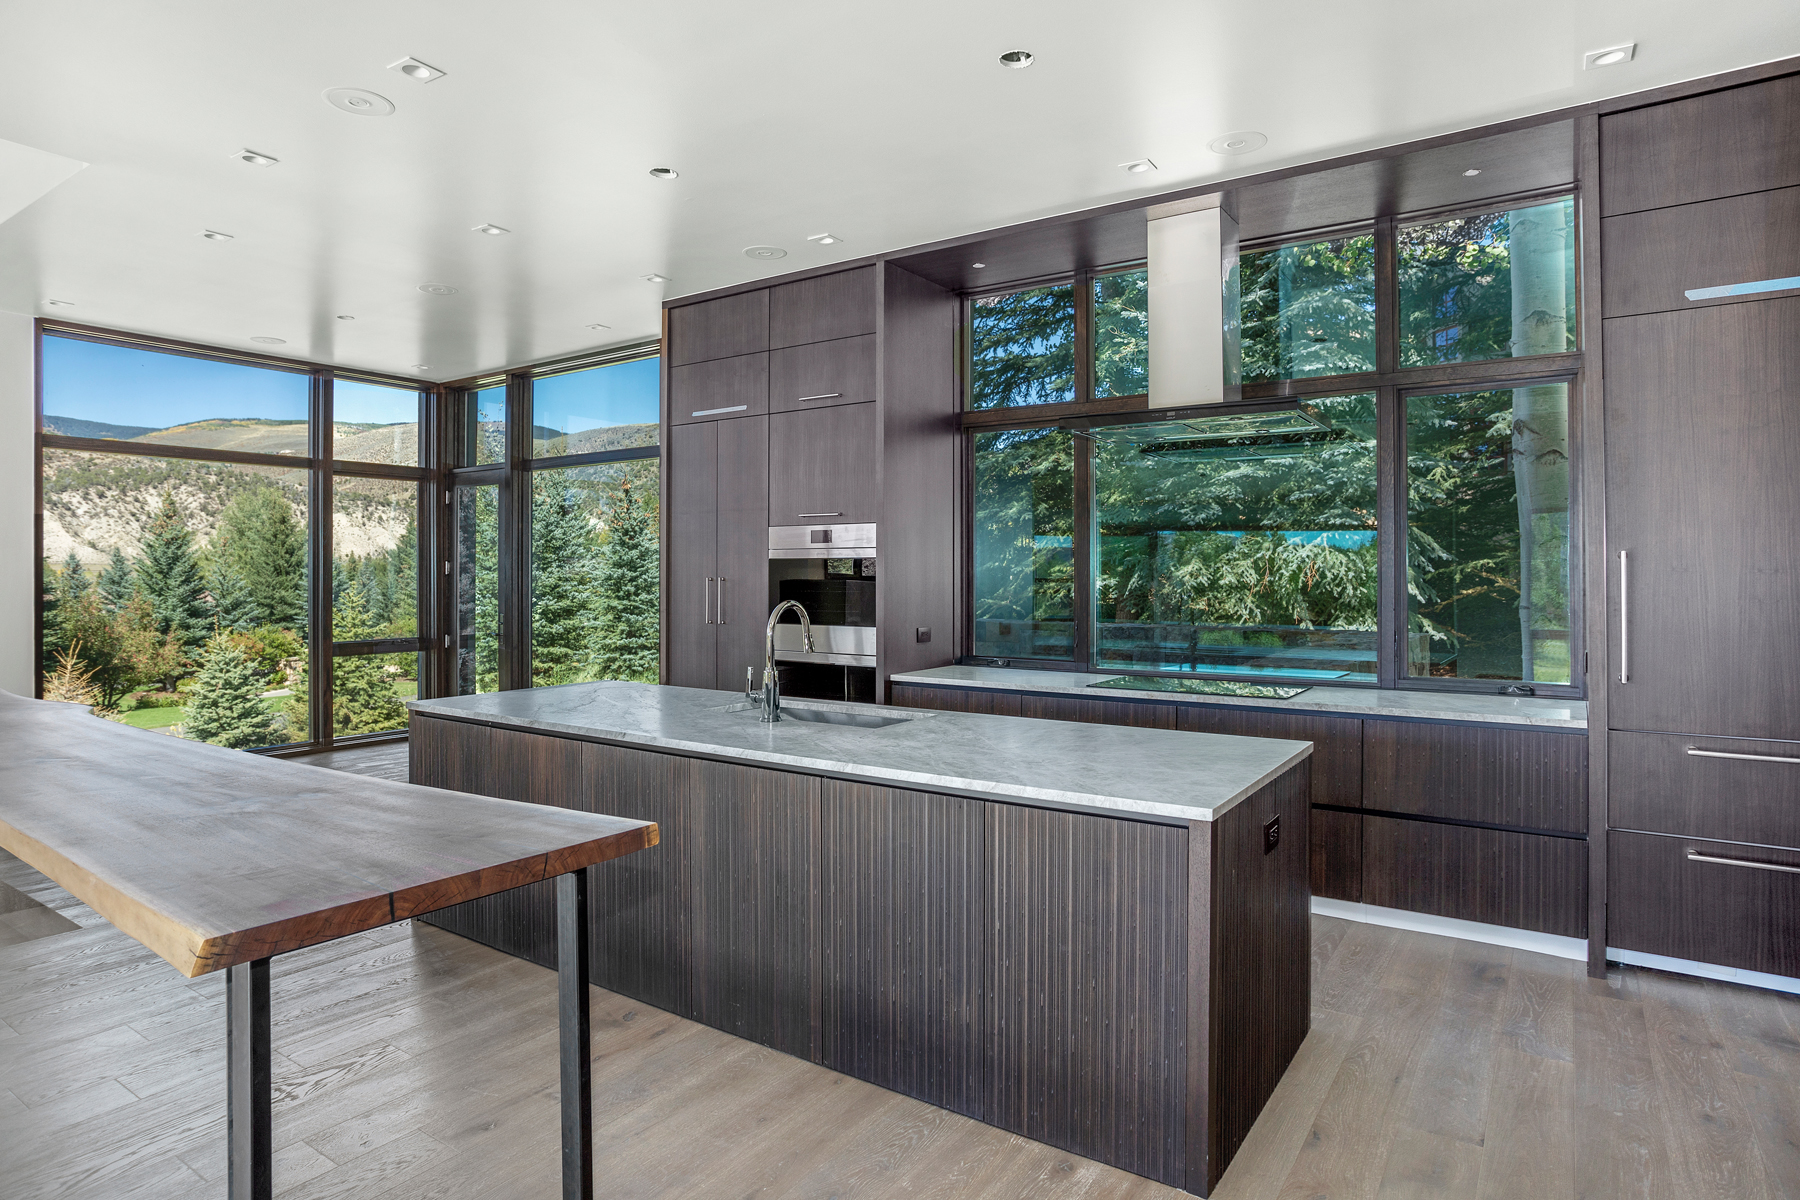 Additional photo for property listing at Mountain modern 5-bedroom/4.5-bath residence 144 Castle Peak Gate Edwards, Colorado 81620 United States